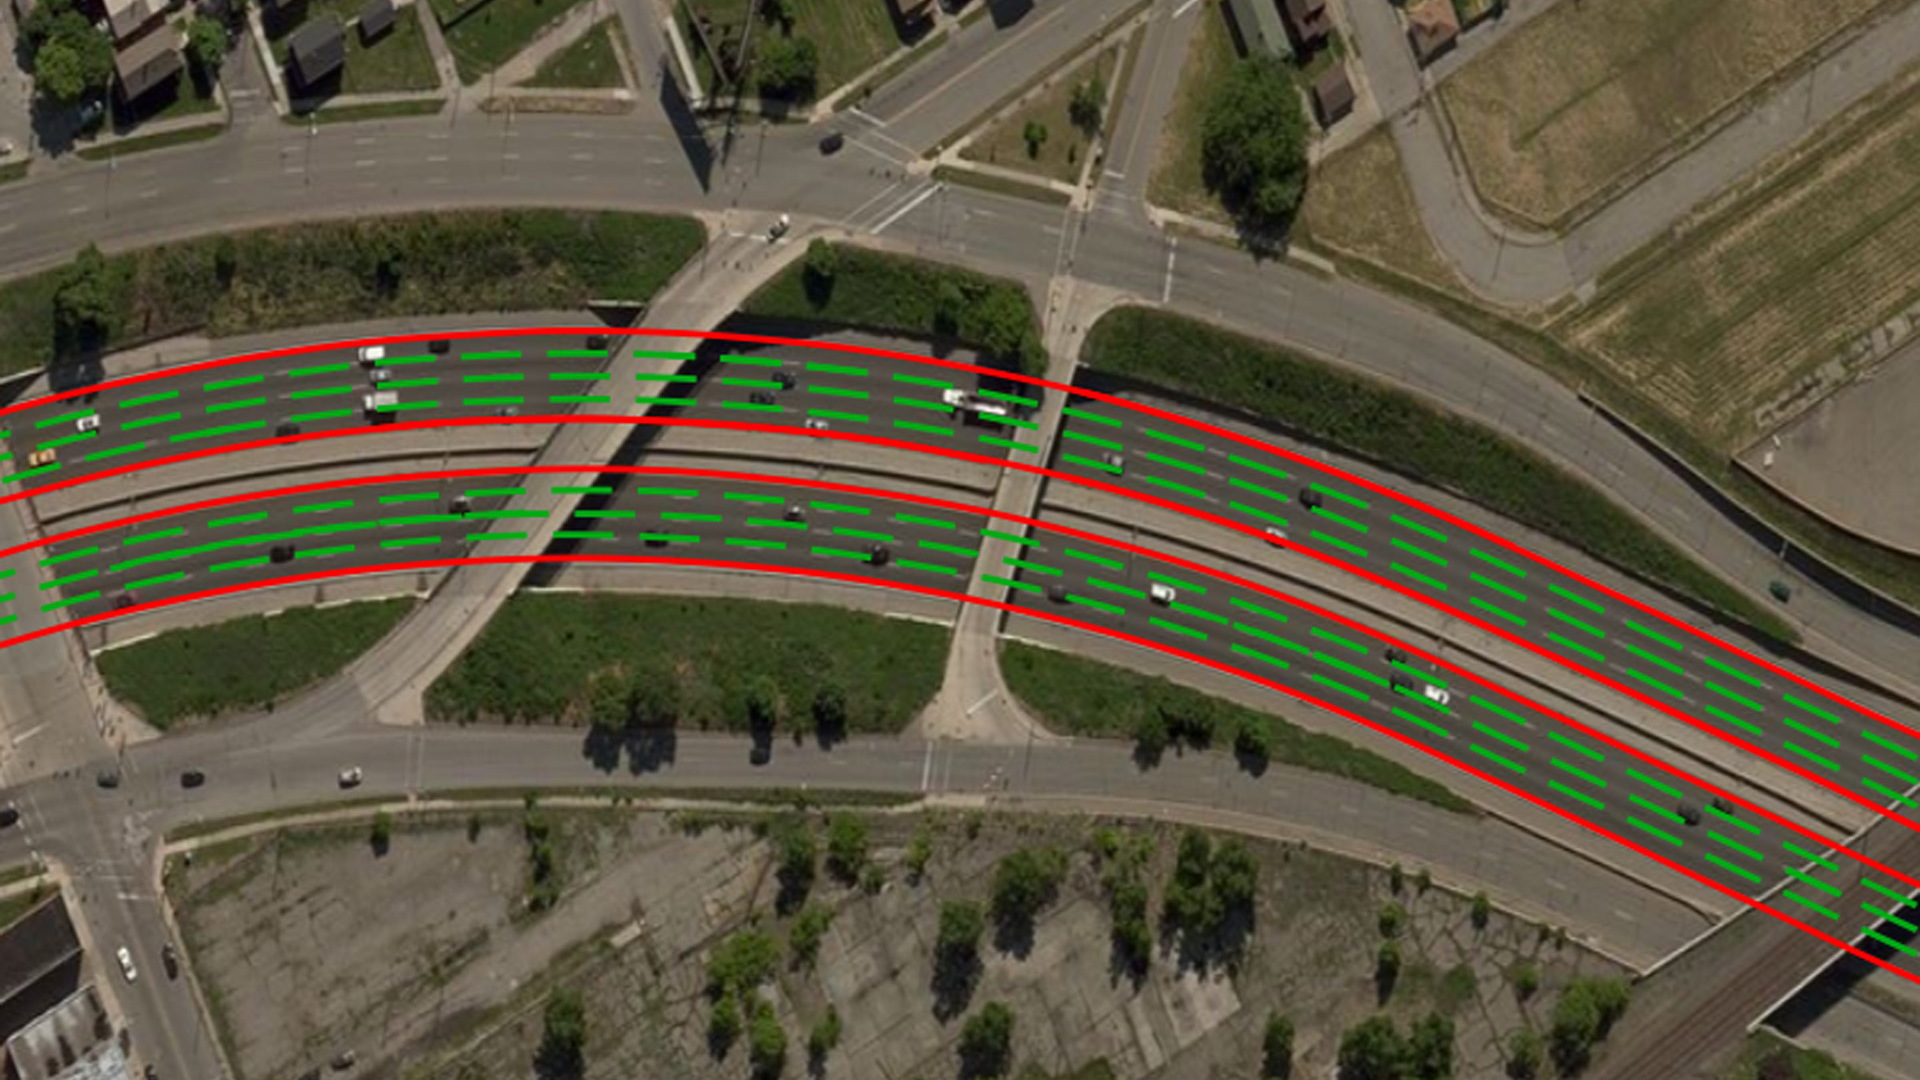 Highly detailed maps for self-driving cars created by satellite imagery